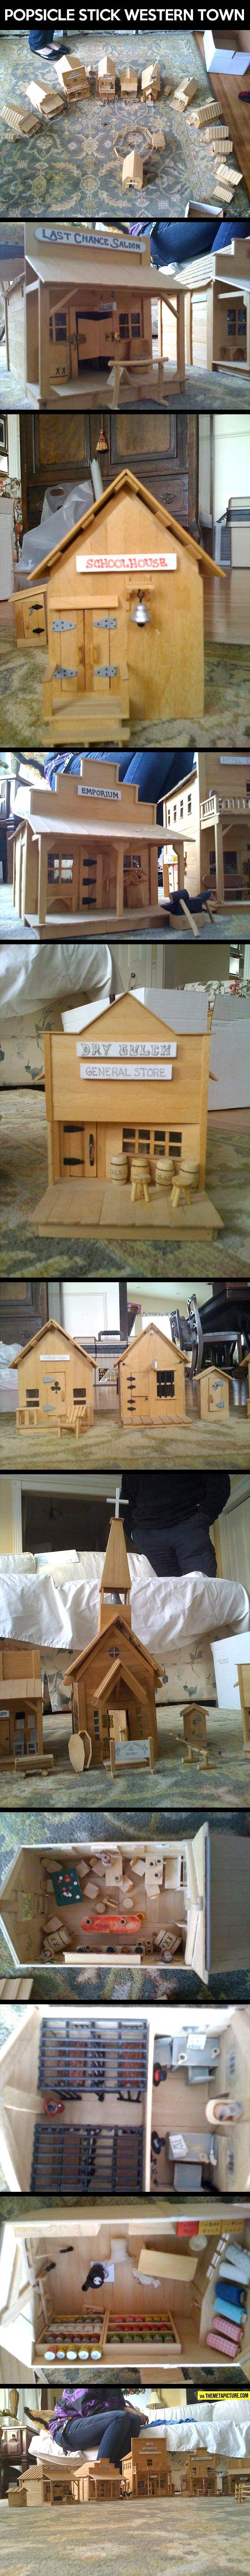 Miniature western town of Popsicle sticks